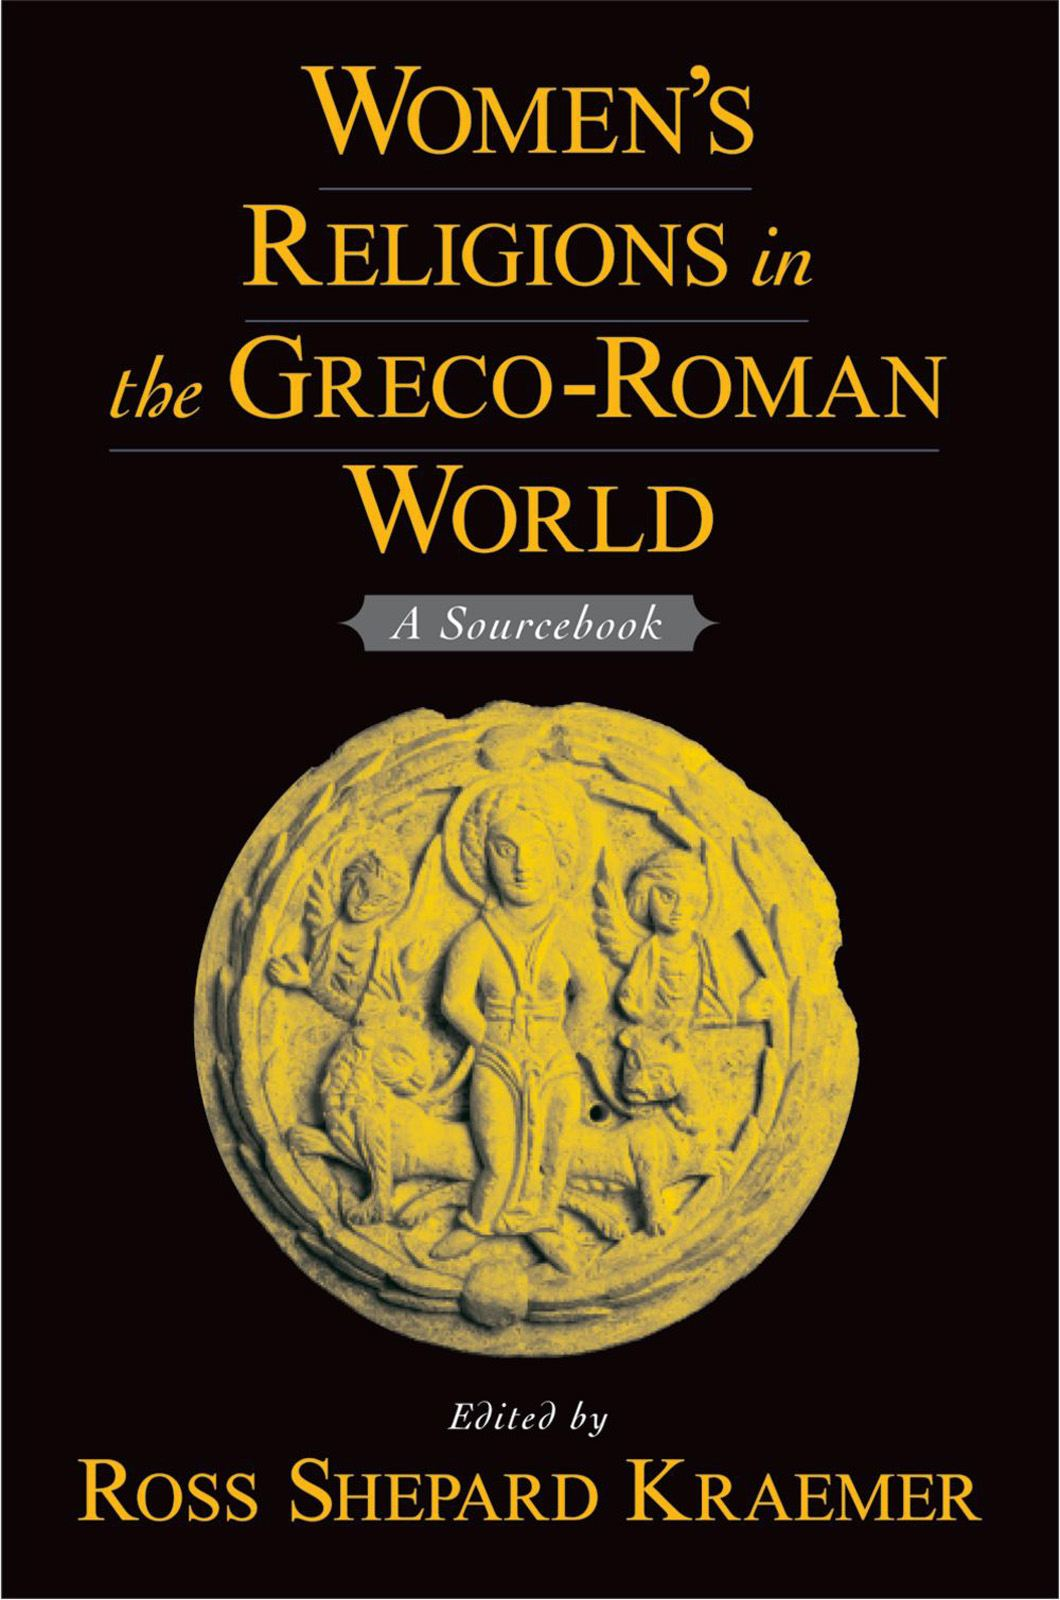 Women's Religions in the Greco-Roman World : A Sourcebook By: Ross Shepard Kraemer